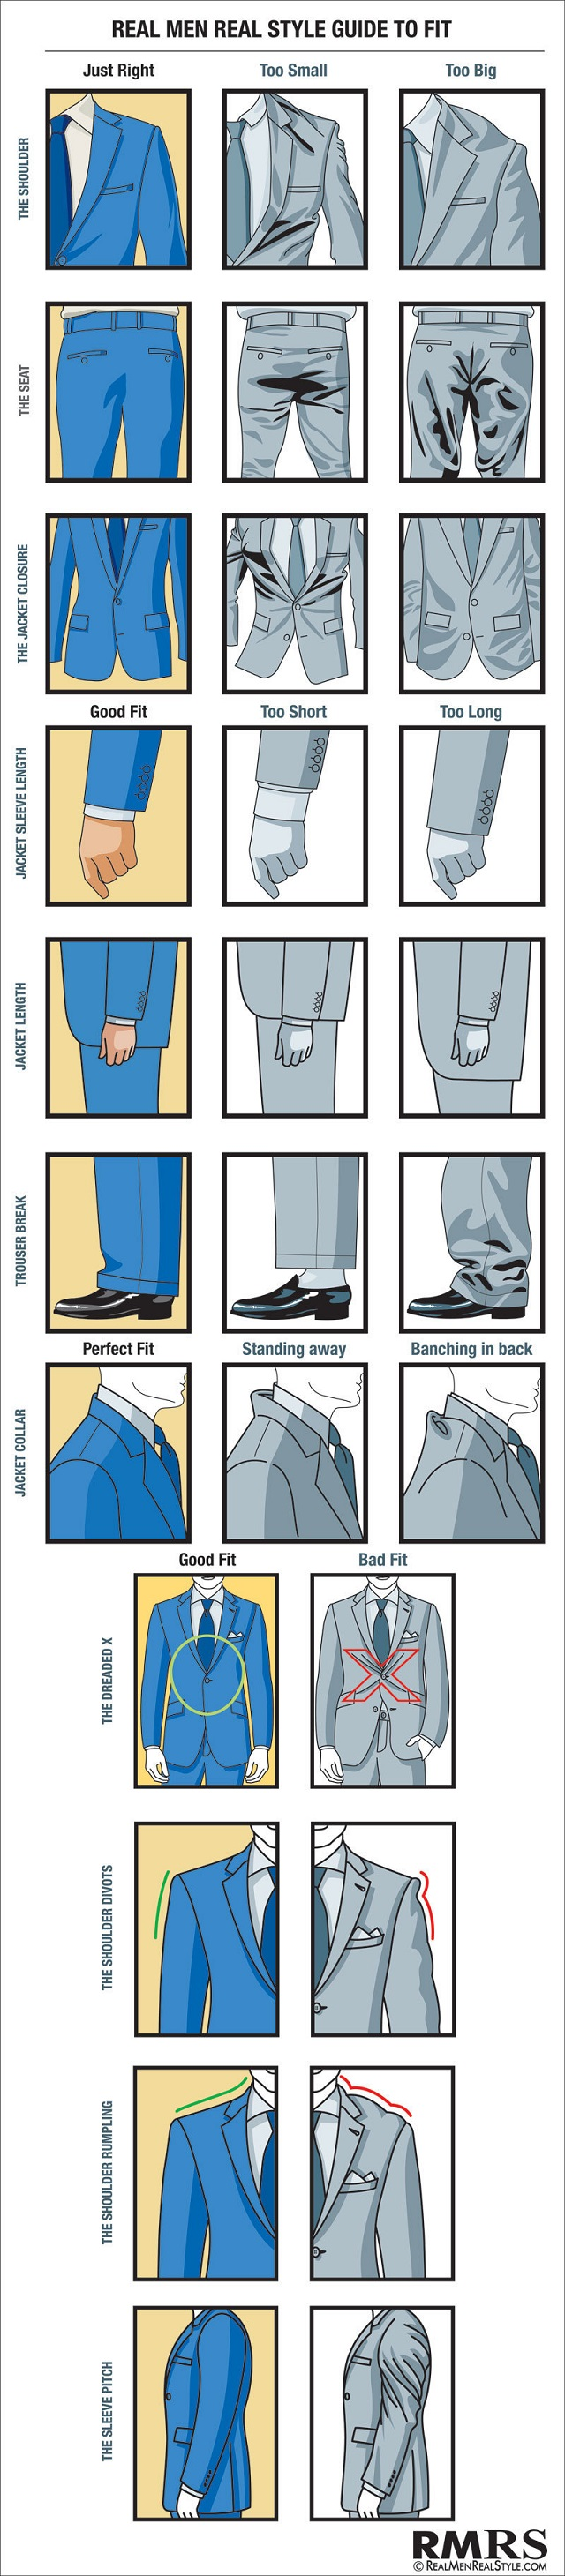 Style Guide for Men Visual-Suit-Fit-Guide-for-Real